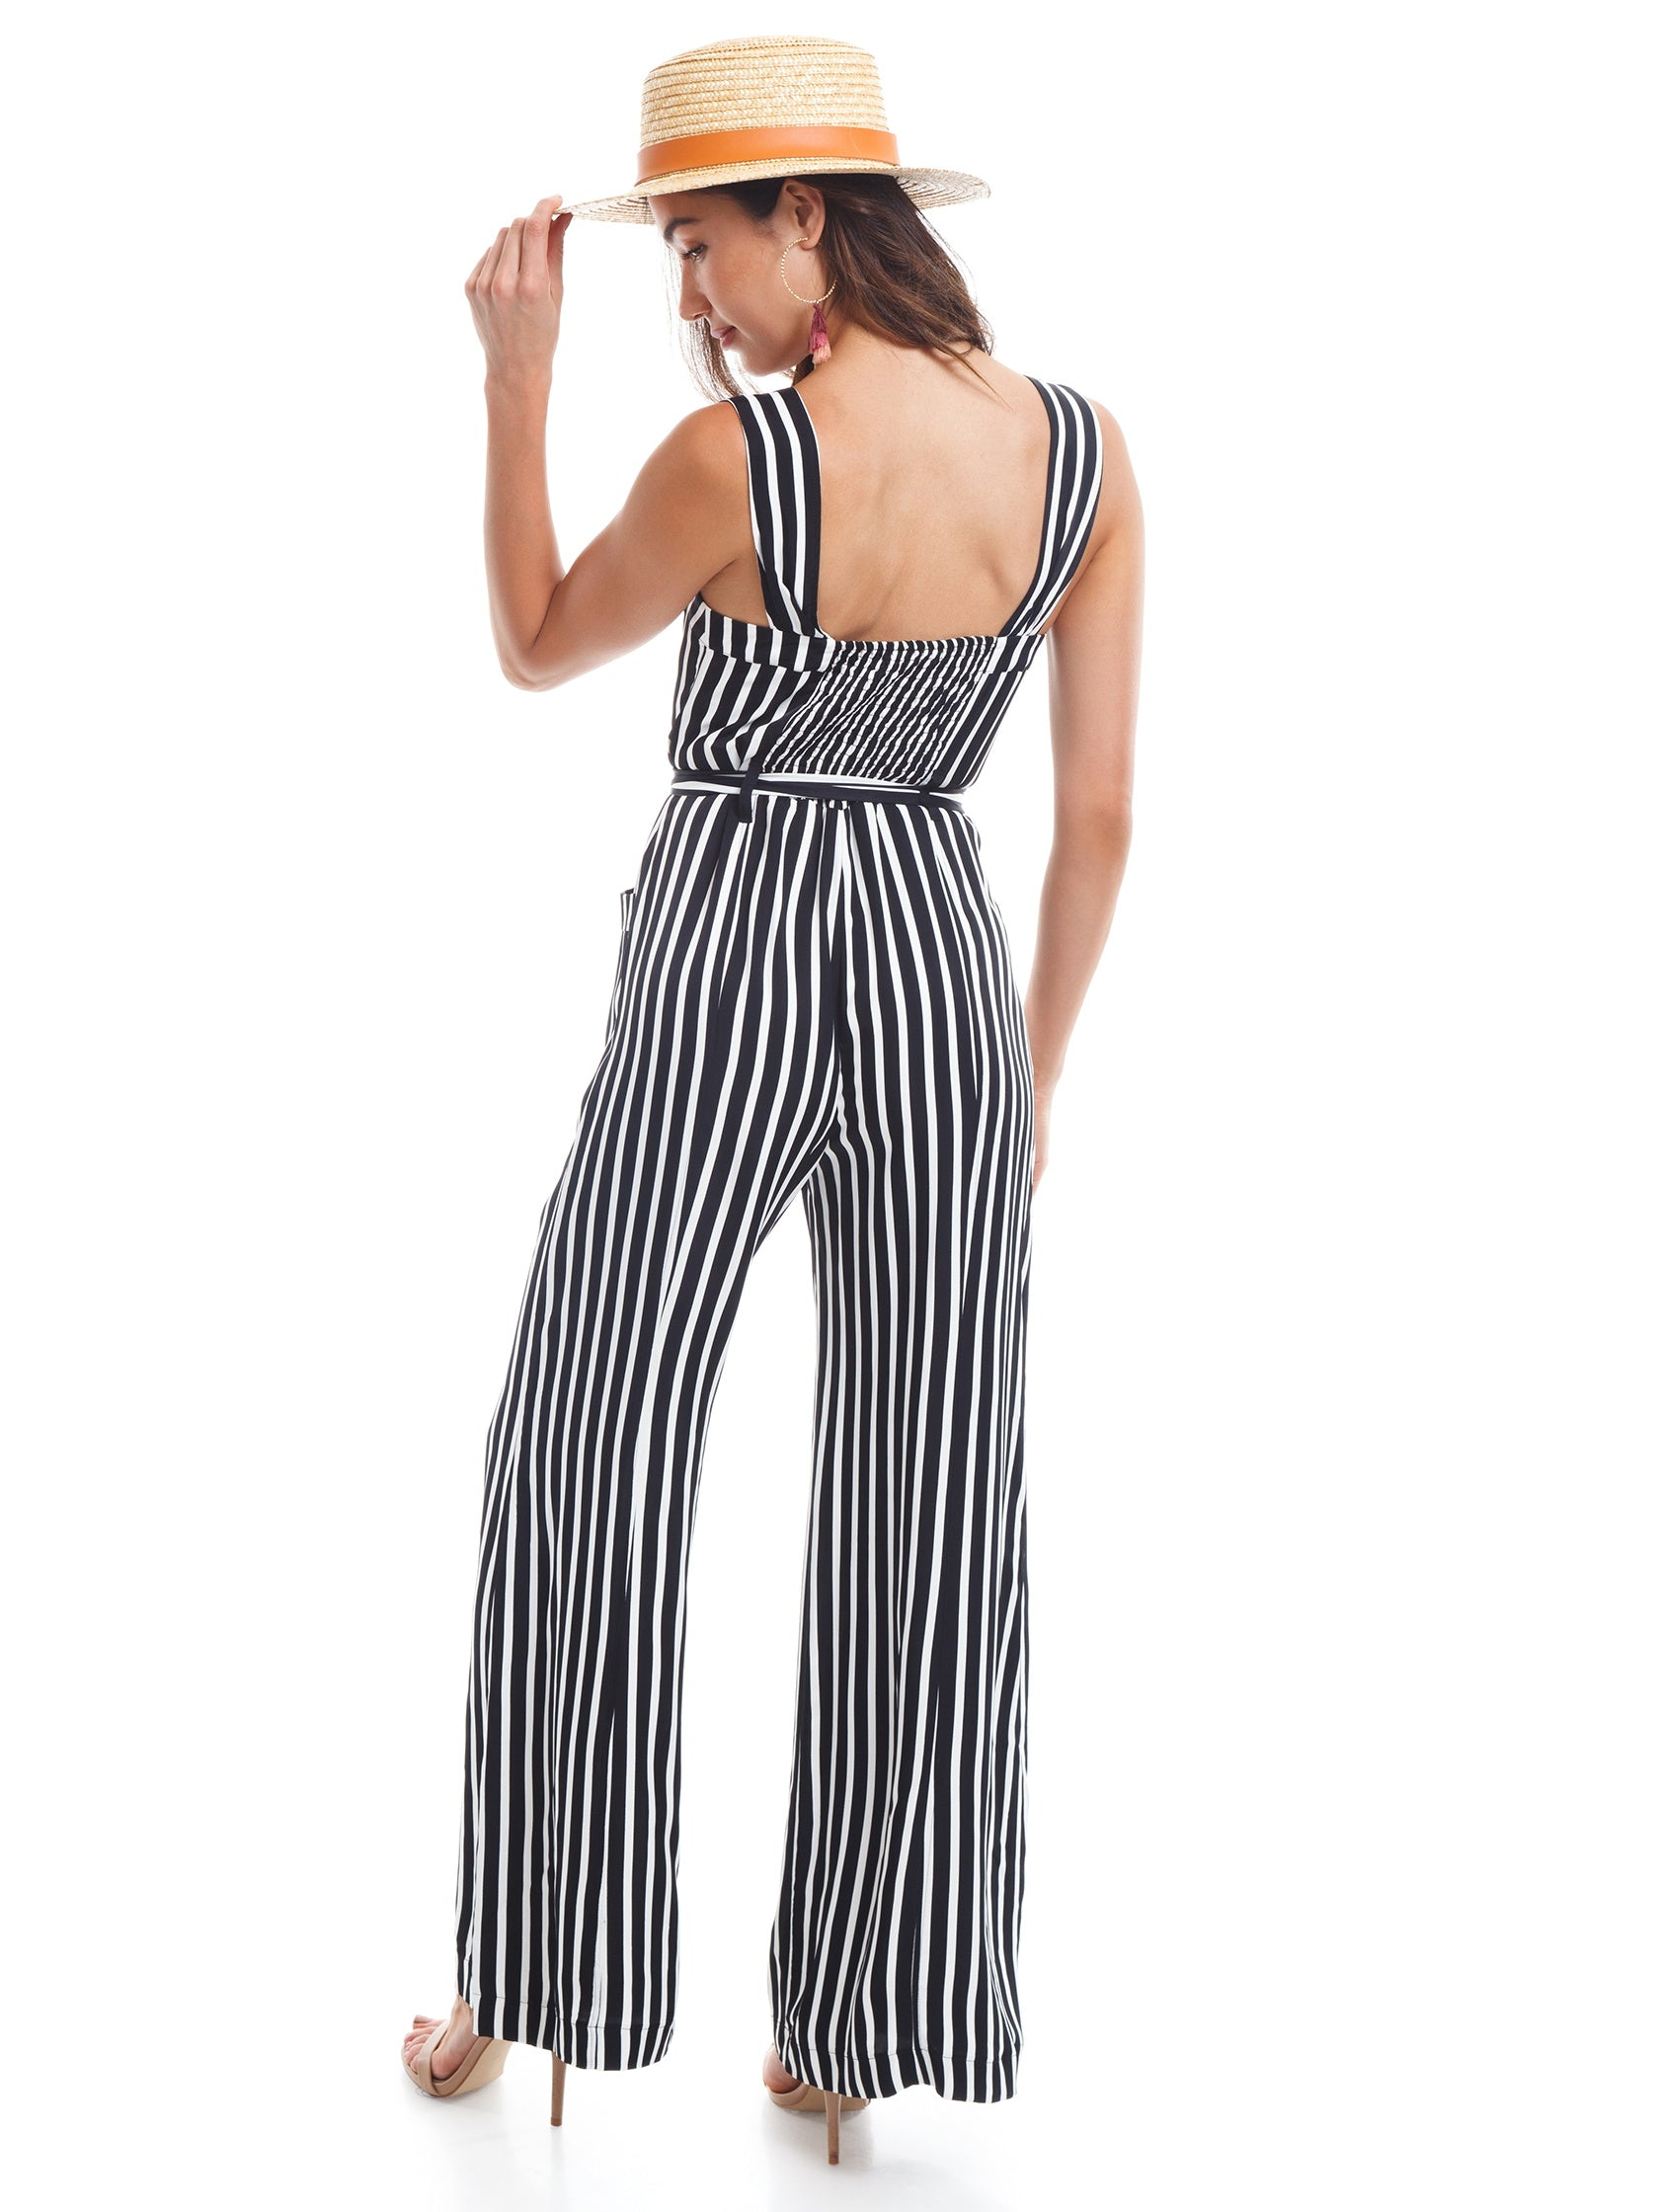 Women wearing a jumpsuit rental from Free People called City Girl Jumpsuit